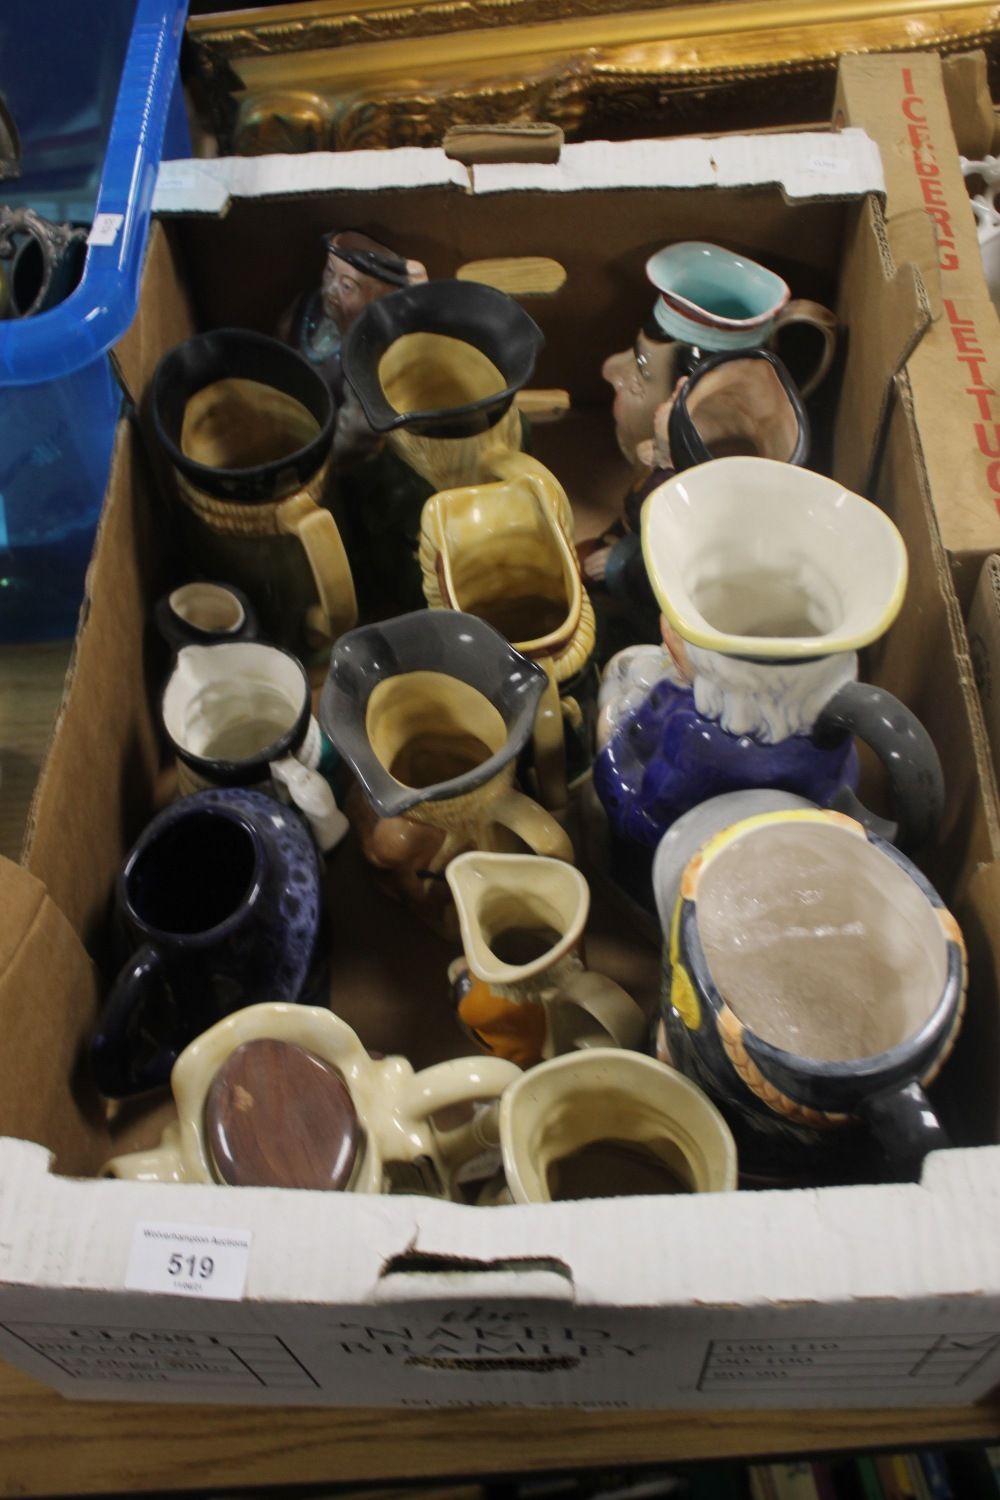 A TRAY OF TOBY JUGS (tray not included)